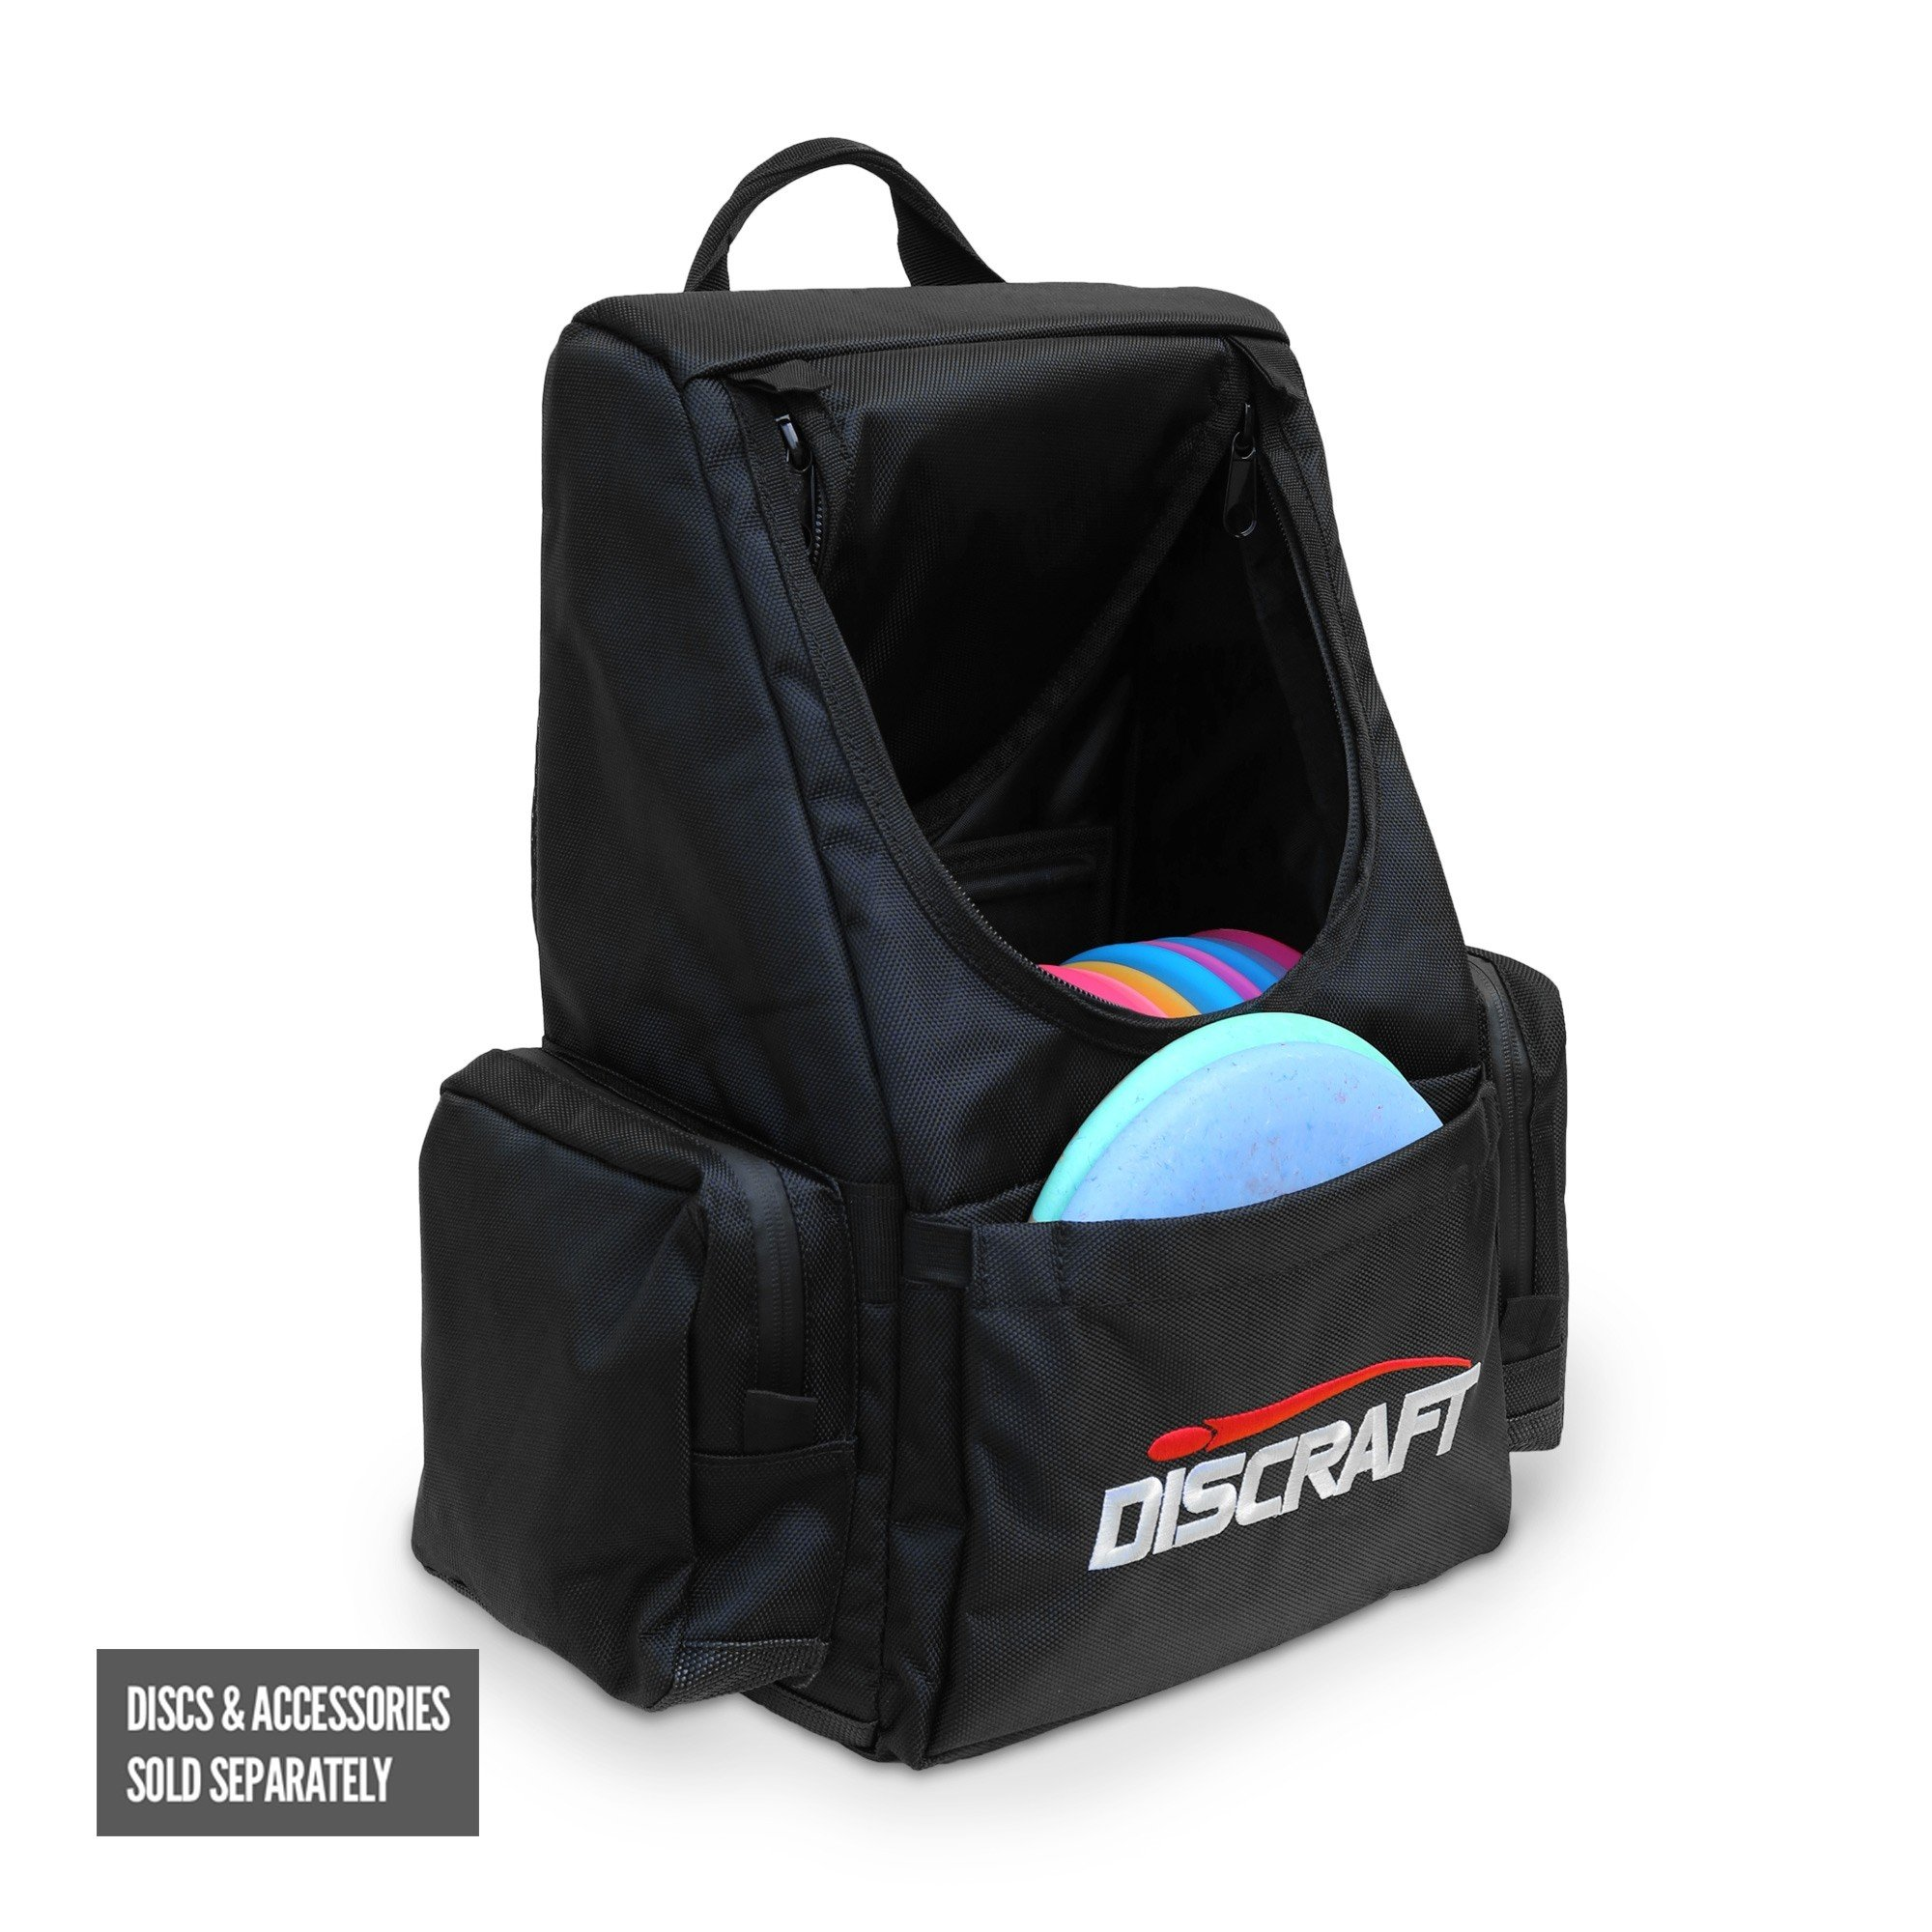 Discraft Disc Golf Bag Backpack Tournament Bag, Black by Discraft